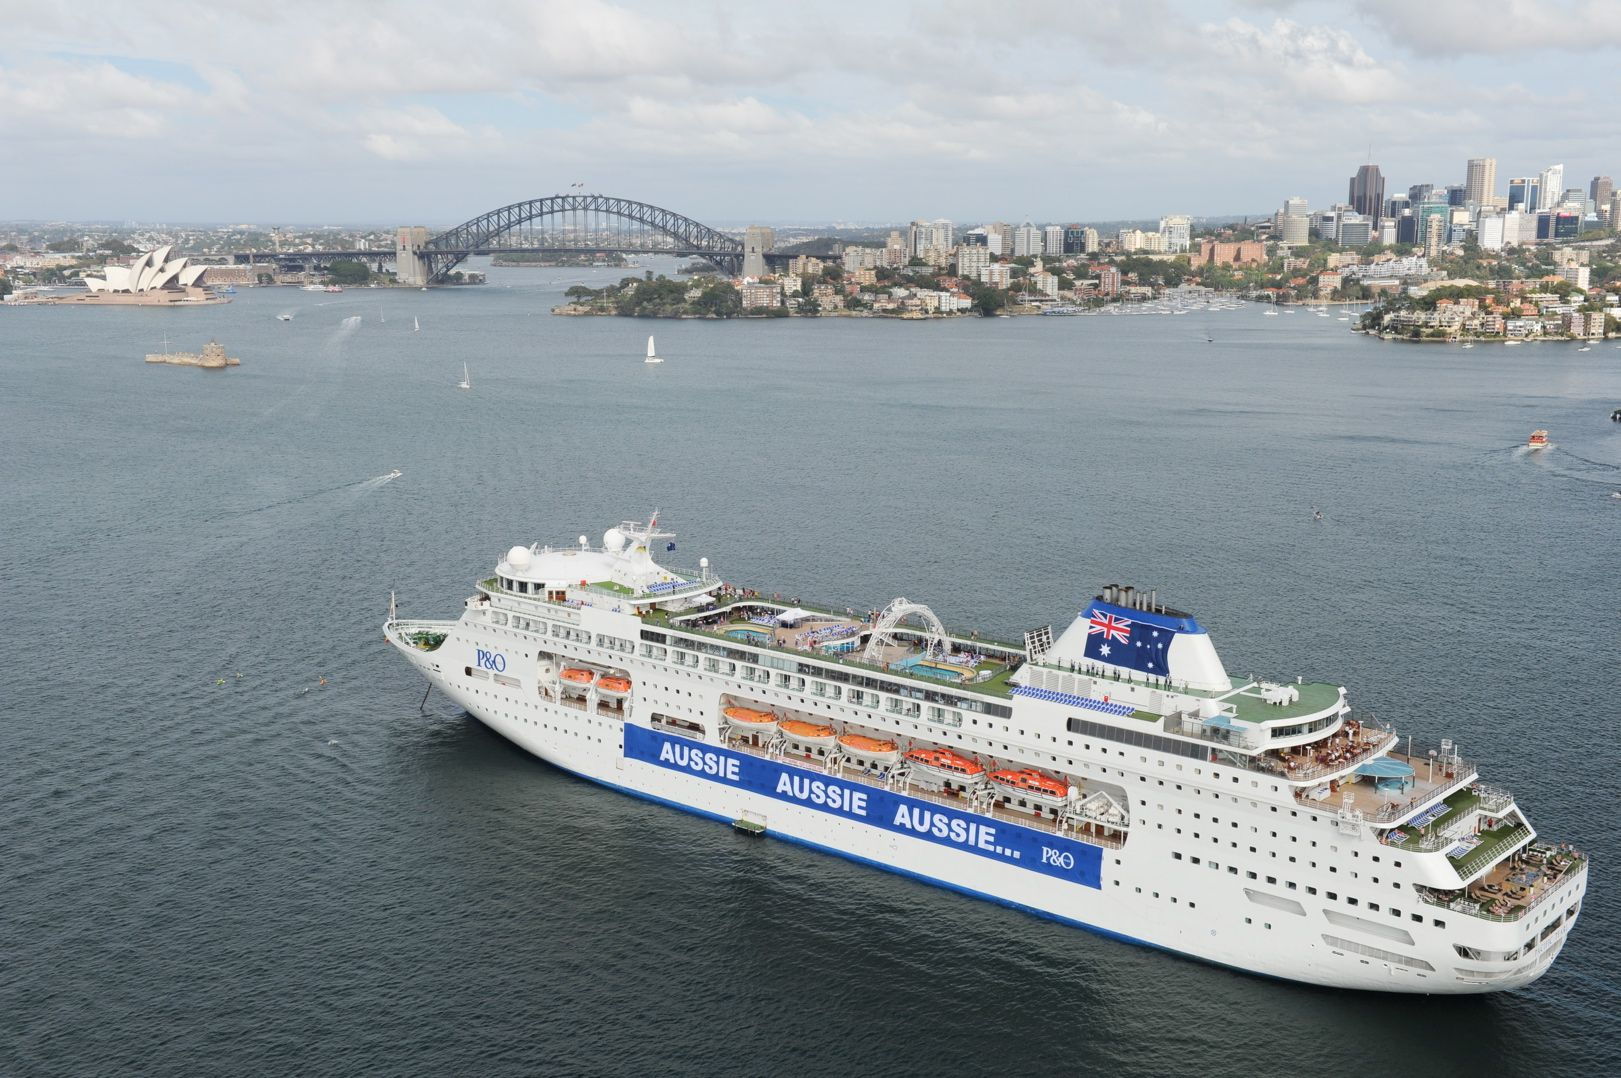 The Cruise Ship Pacific Pearl To Change Owners Luxury Cruise - Cruise ship pacific